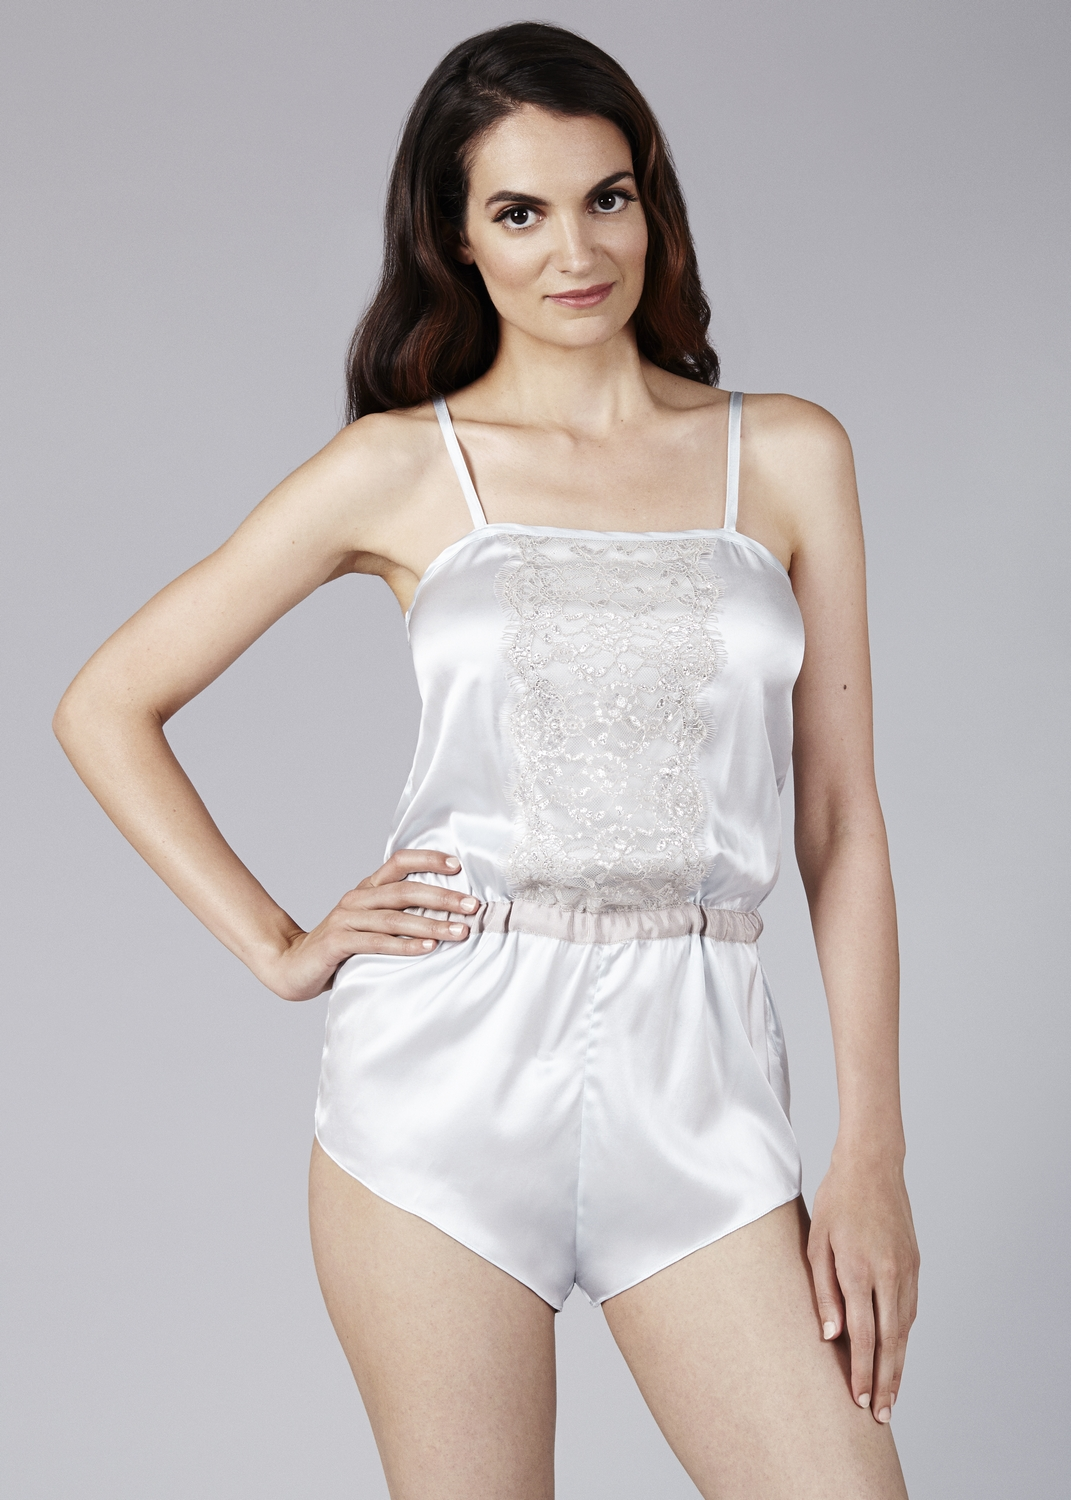 tn_Brittany Romper in Something Blue_The Giving Bride SS16.jpg